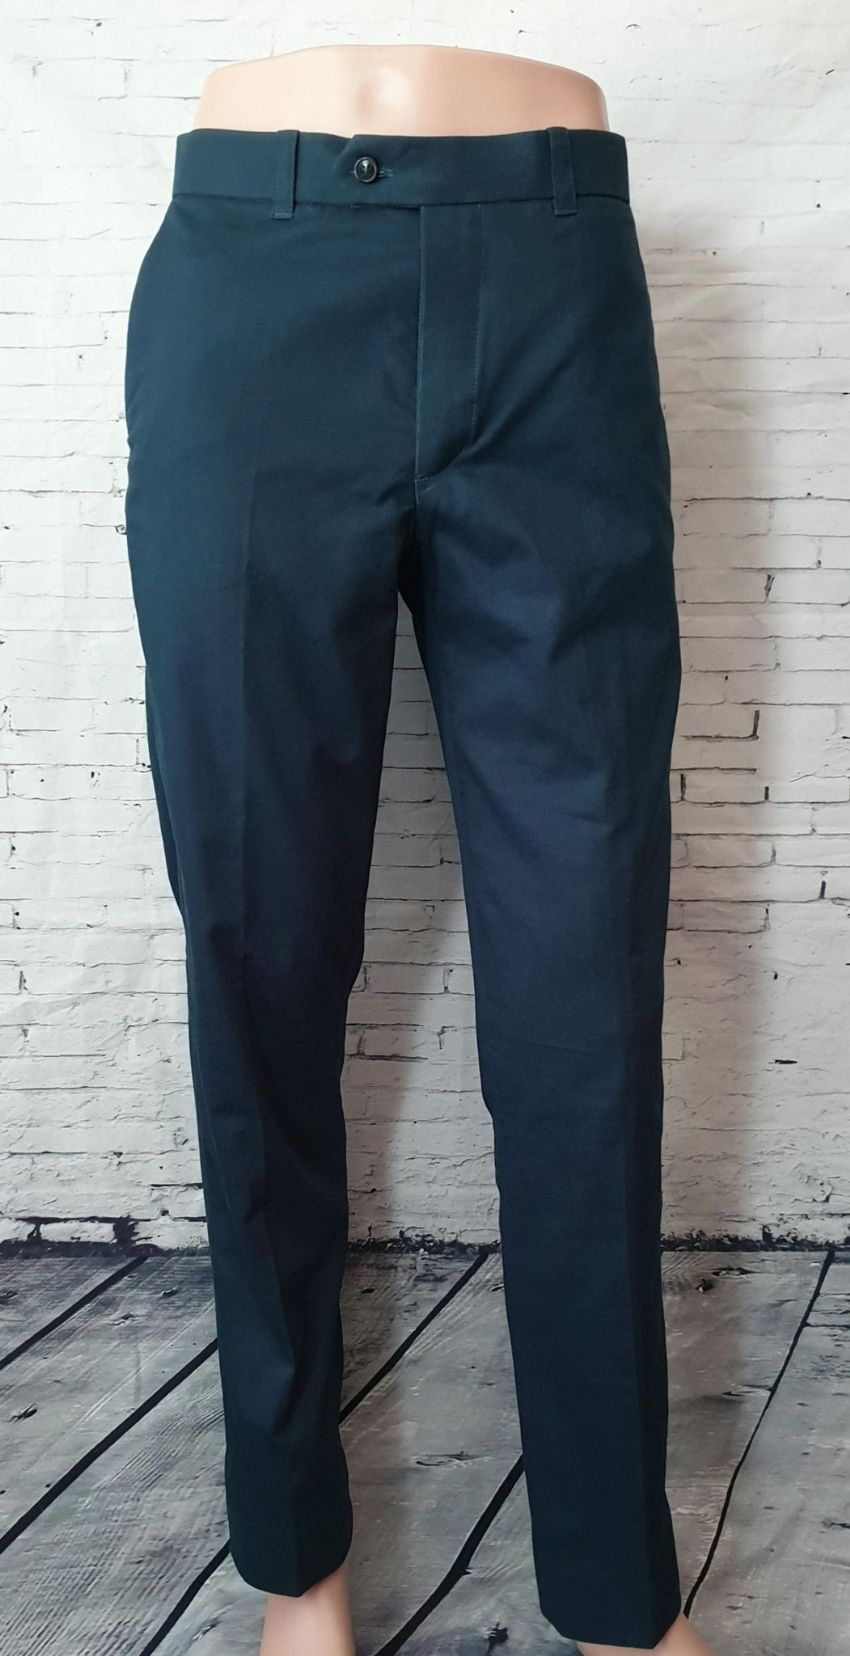 Petrol Blue Sta Press Trousers The Crown Jester Sta Press Trouser Classic styling in a petrol blue cotton 100 Cotton Side pockets Two back pockets Fitted with rubber shirt